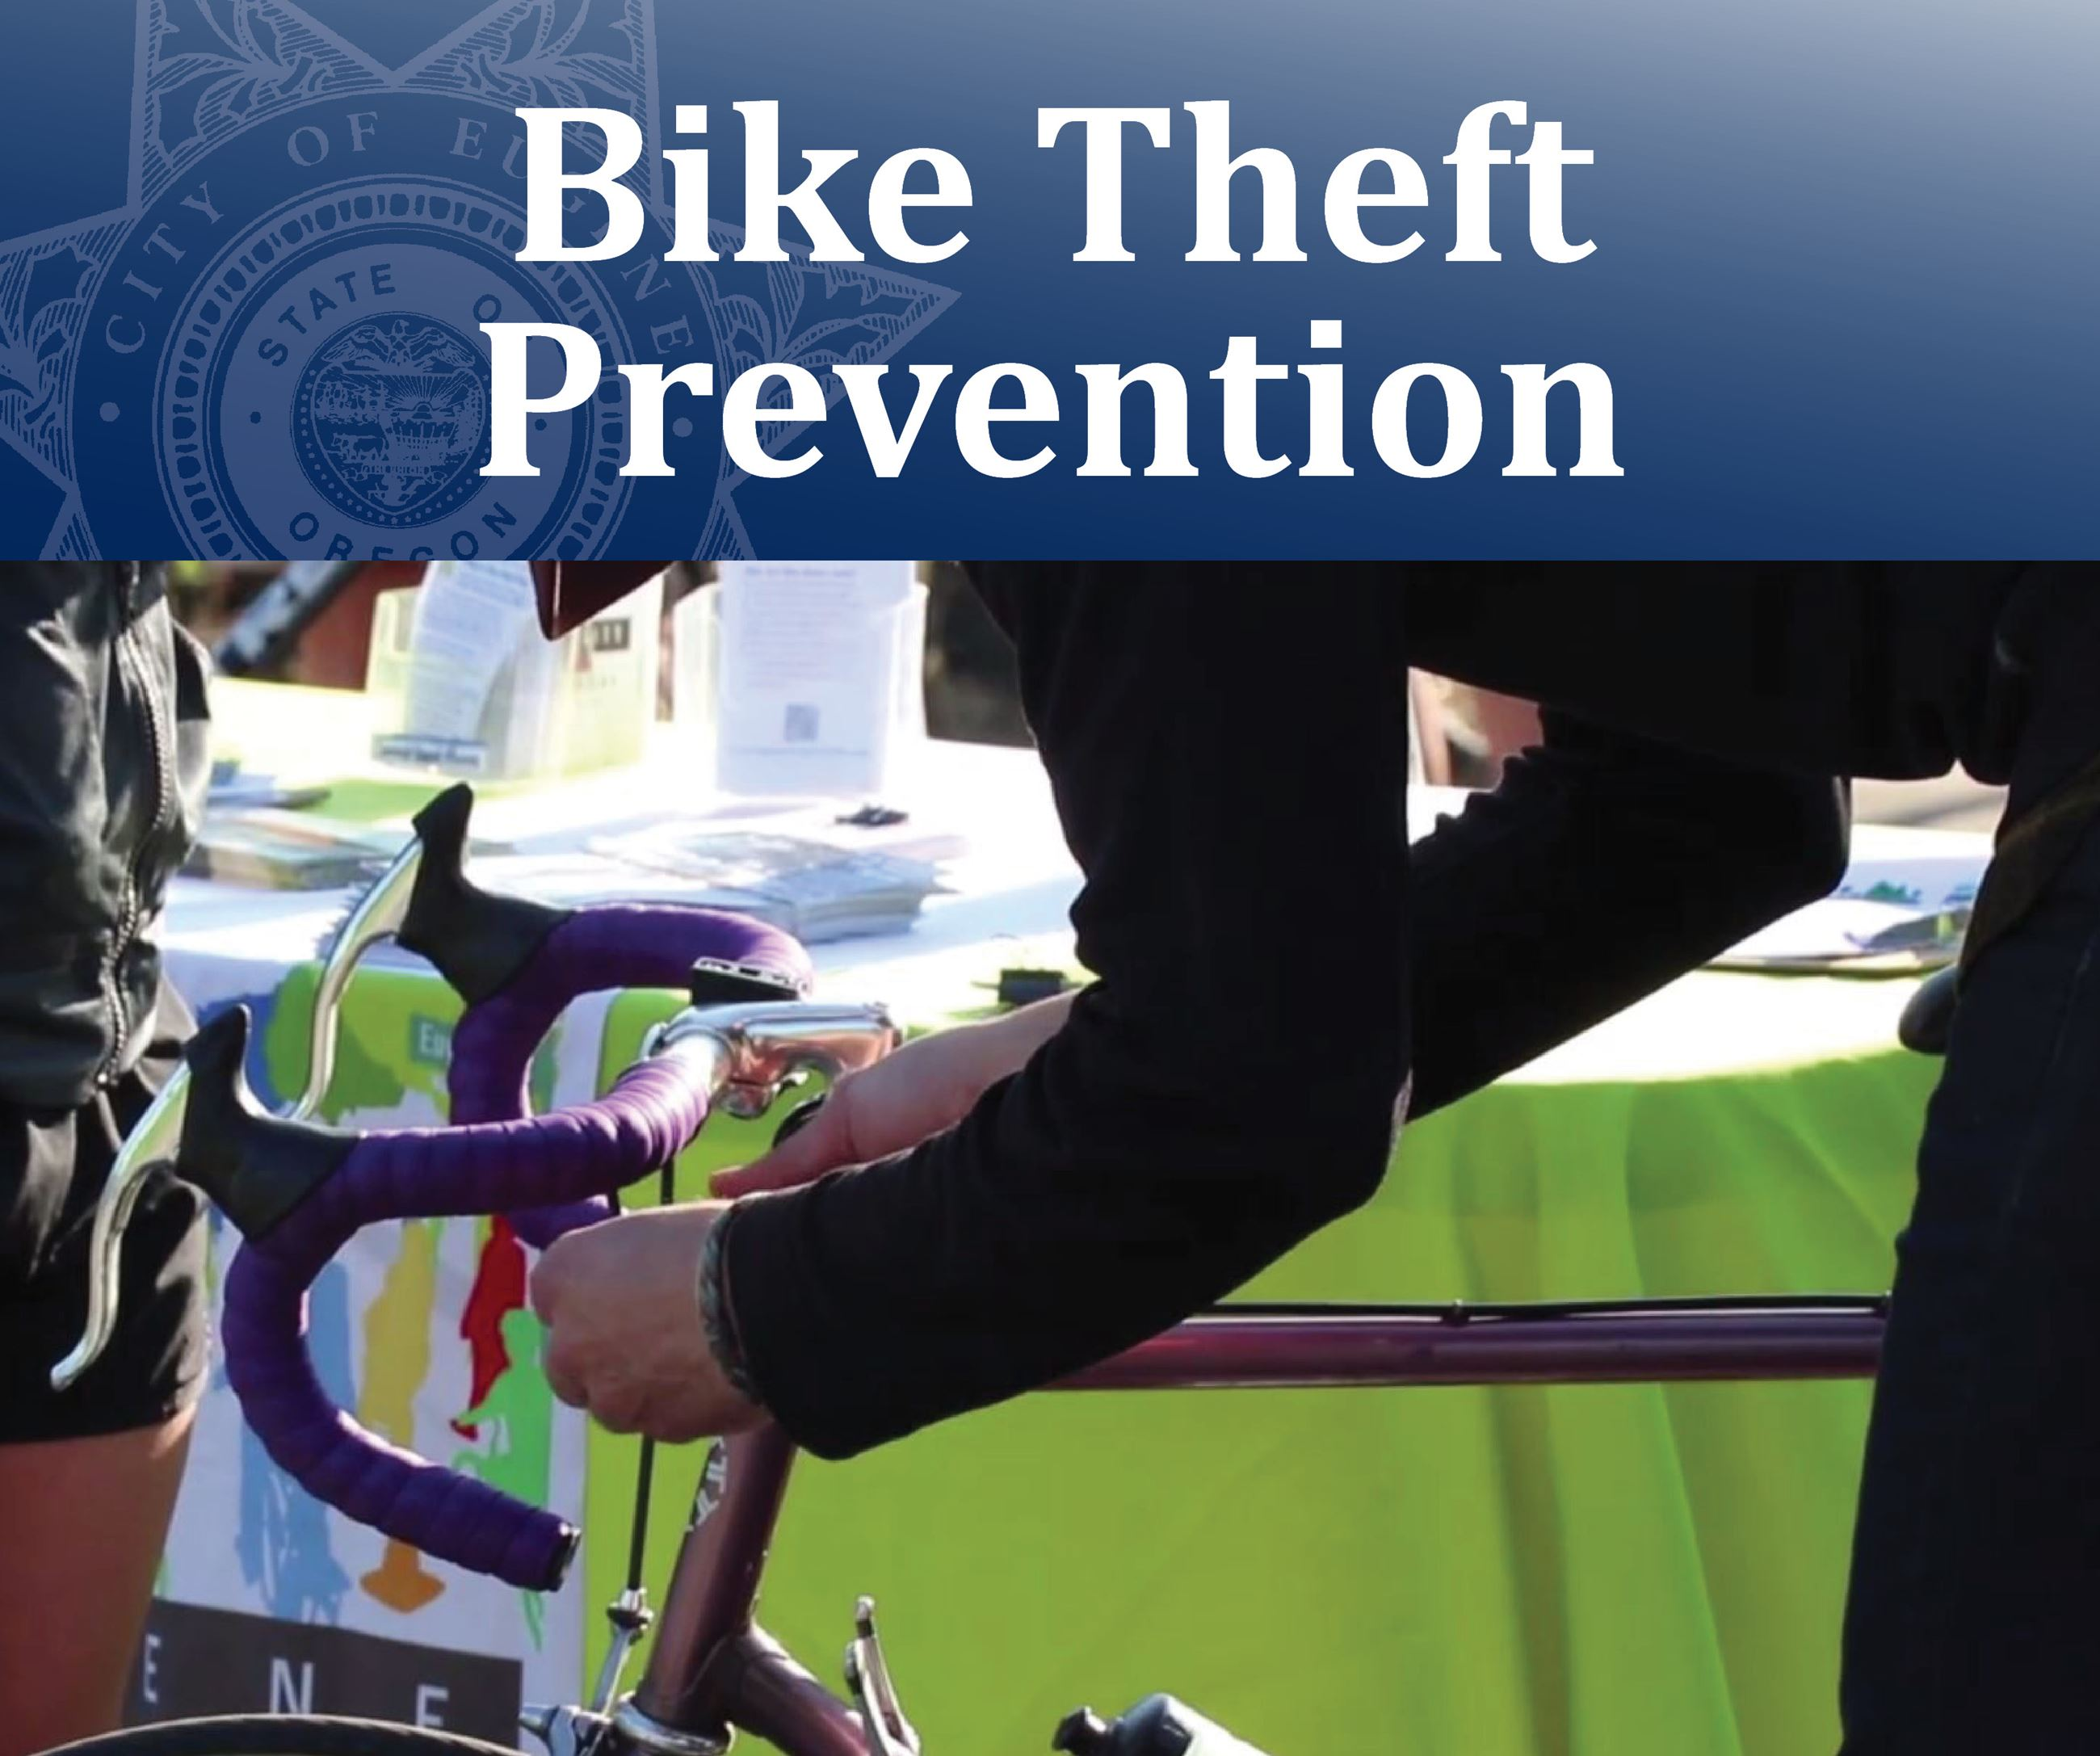 Bike Theft Prevention Opens in new window